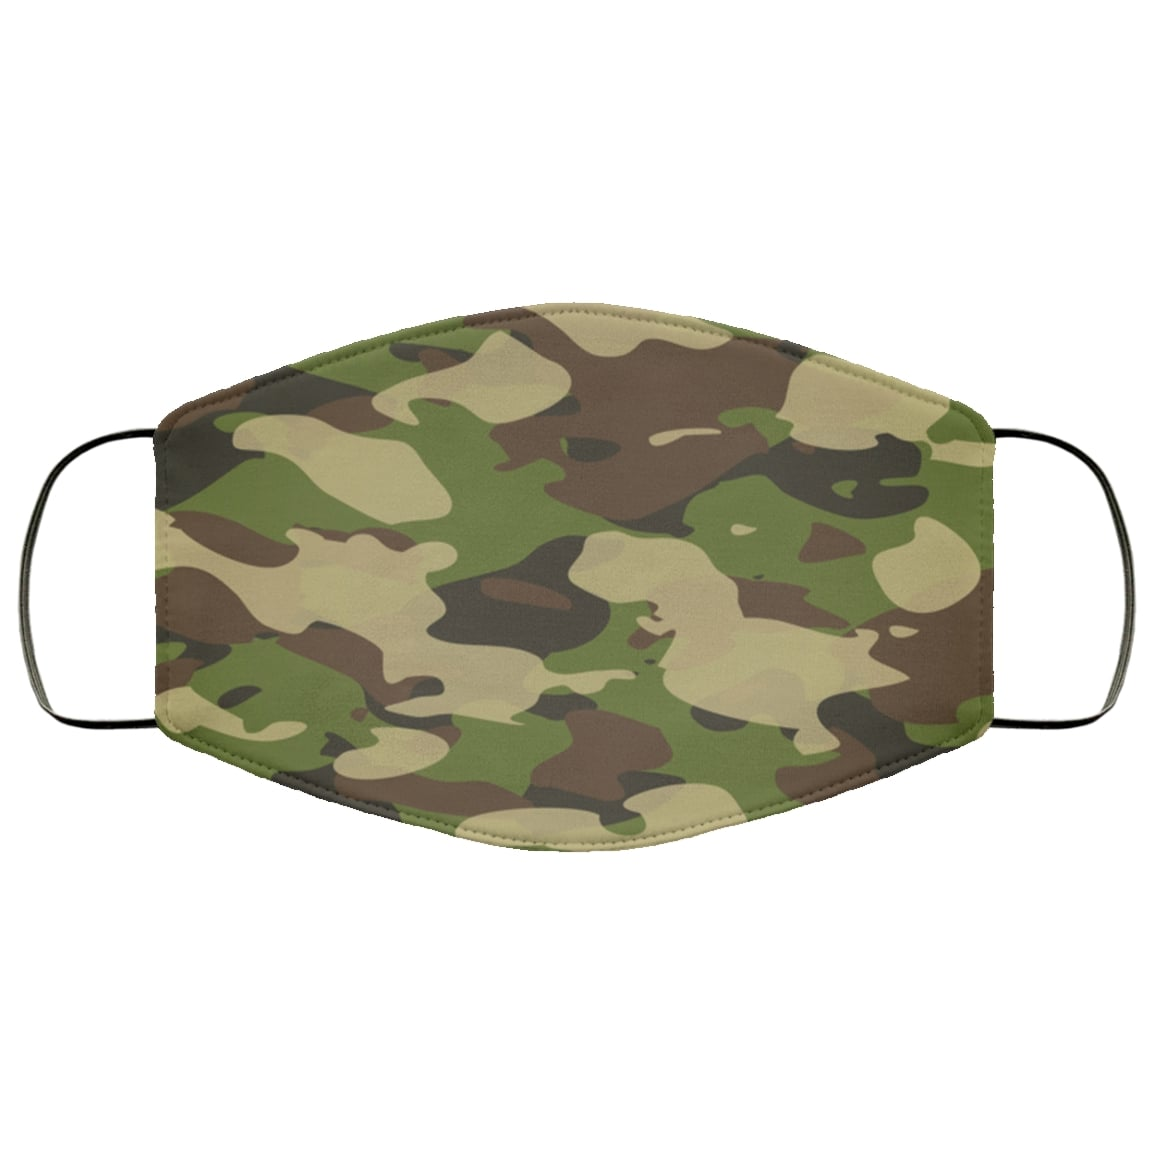 Camouflage army military anti pollution face mask 2